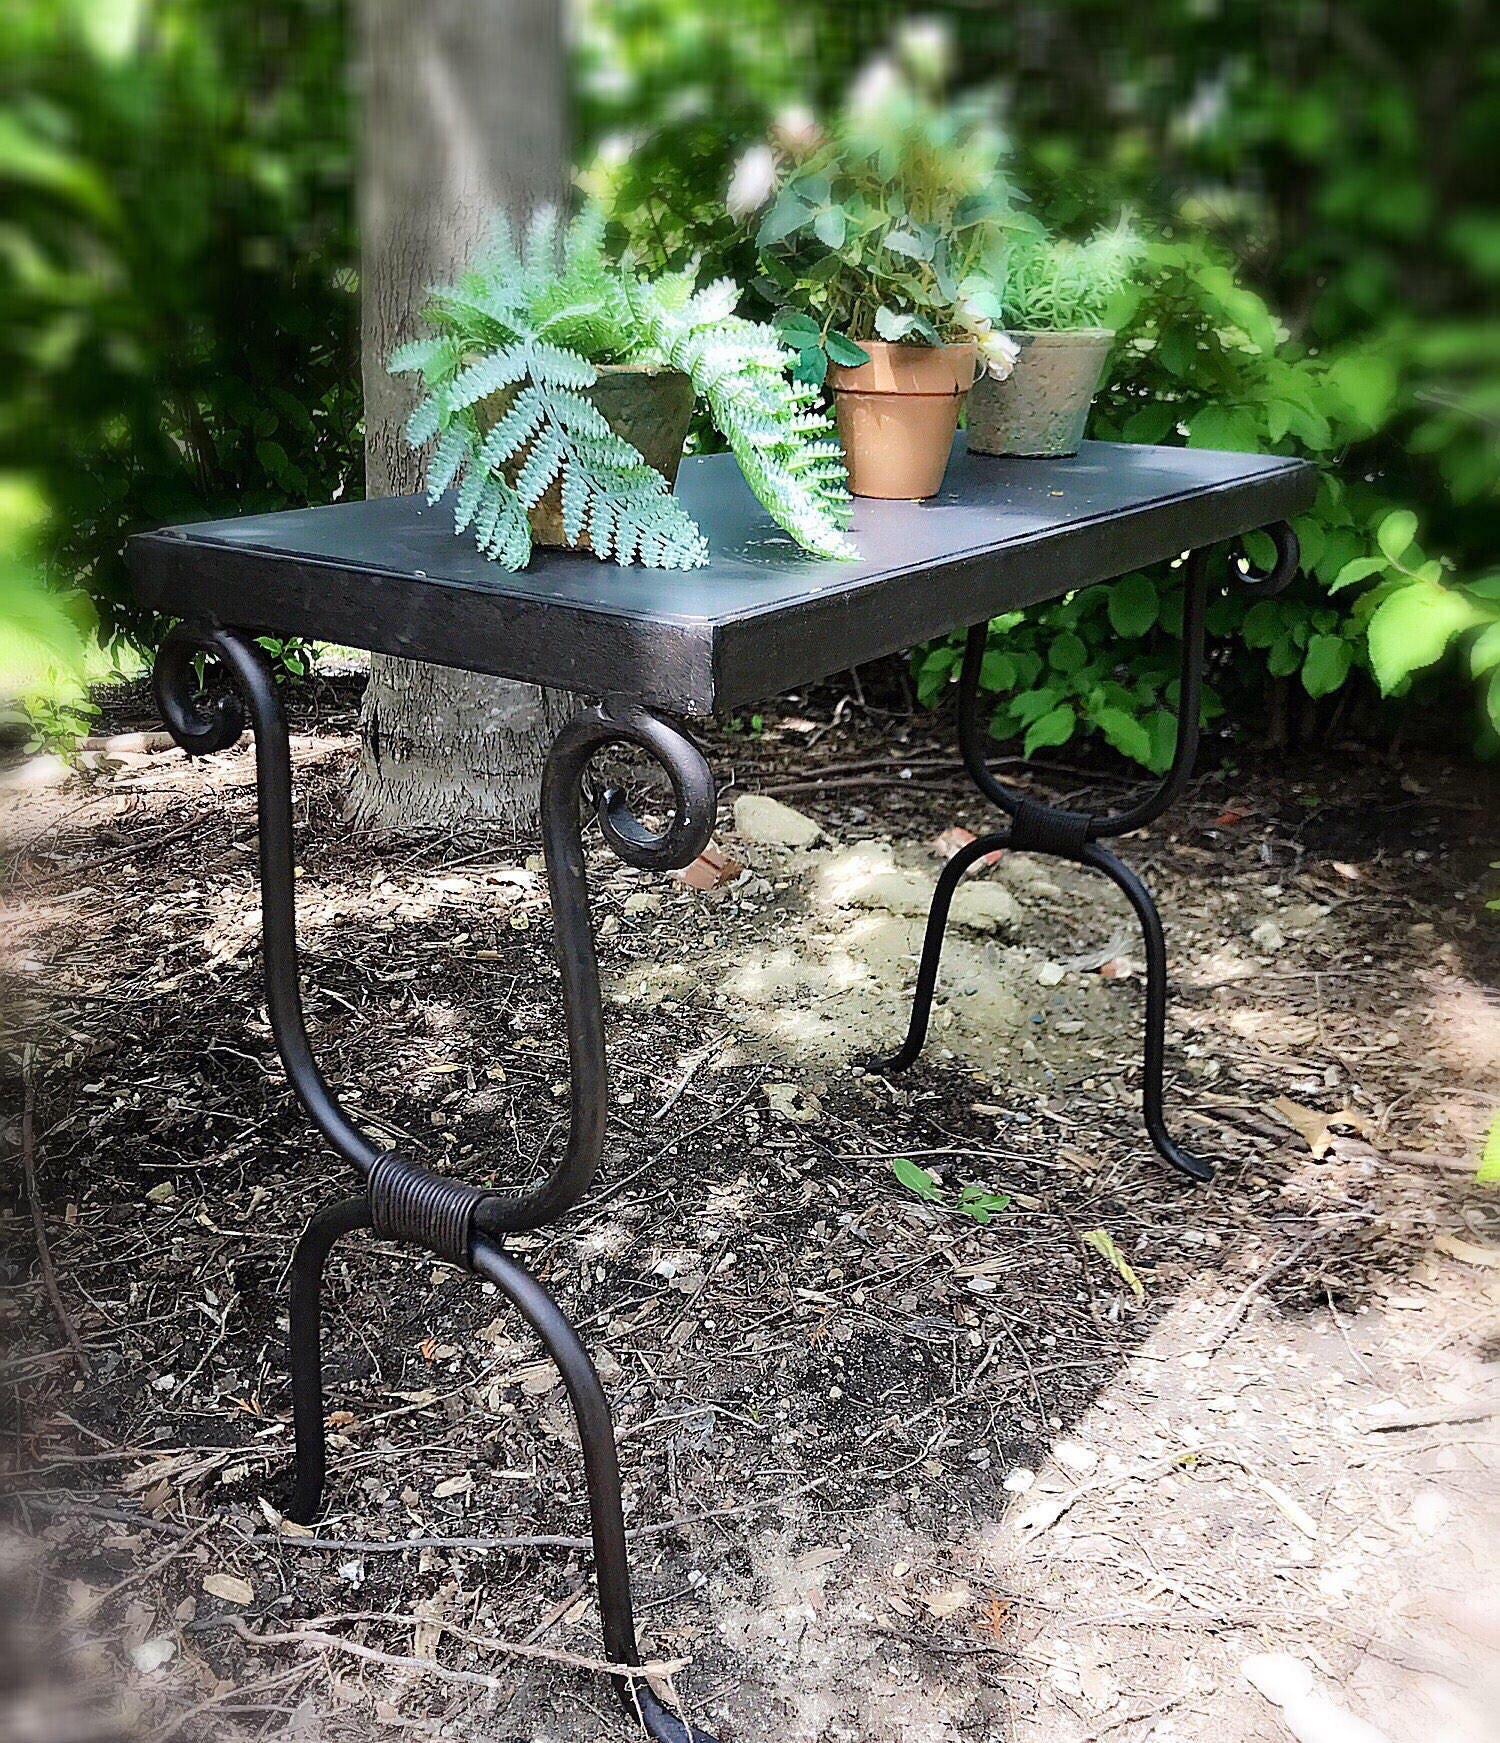 Vintage Black Wrought Iron Bench Rustic Bench Iron Plant